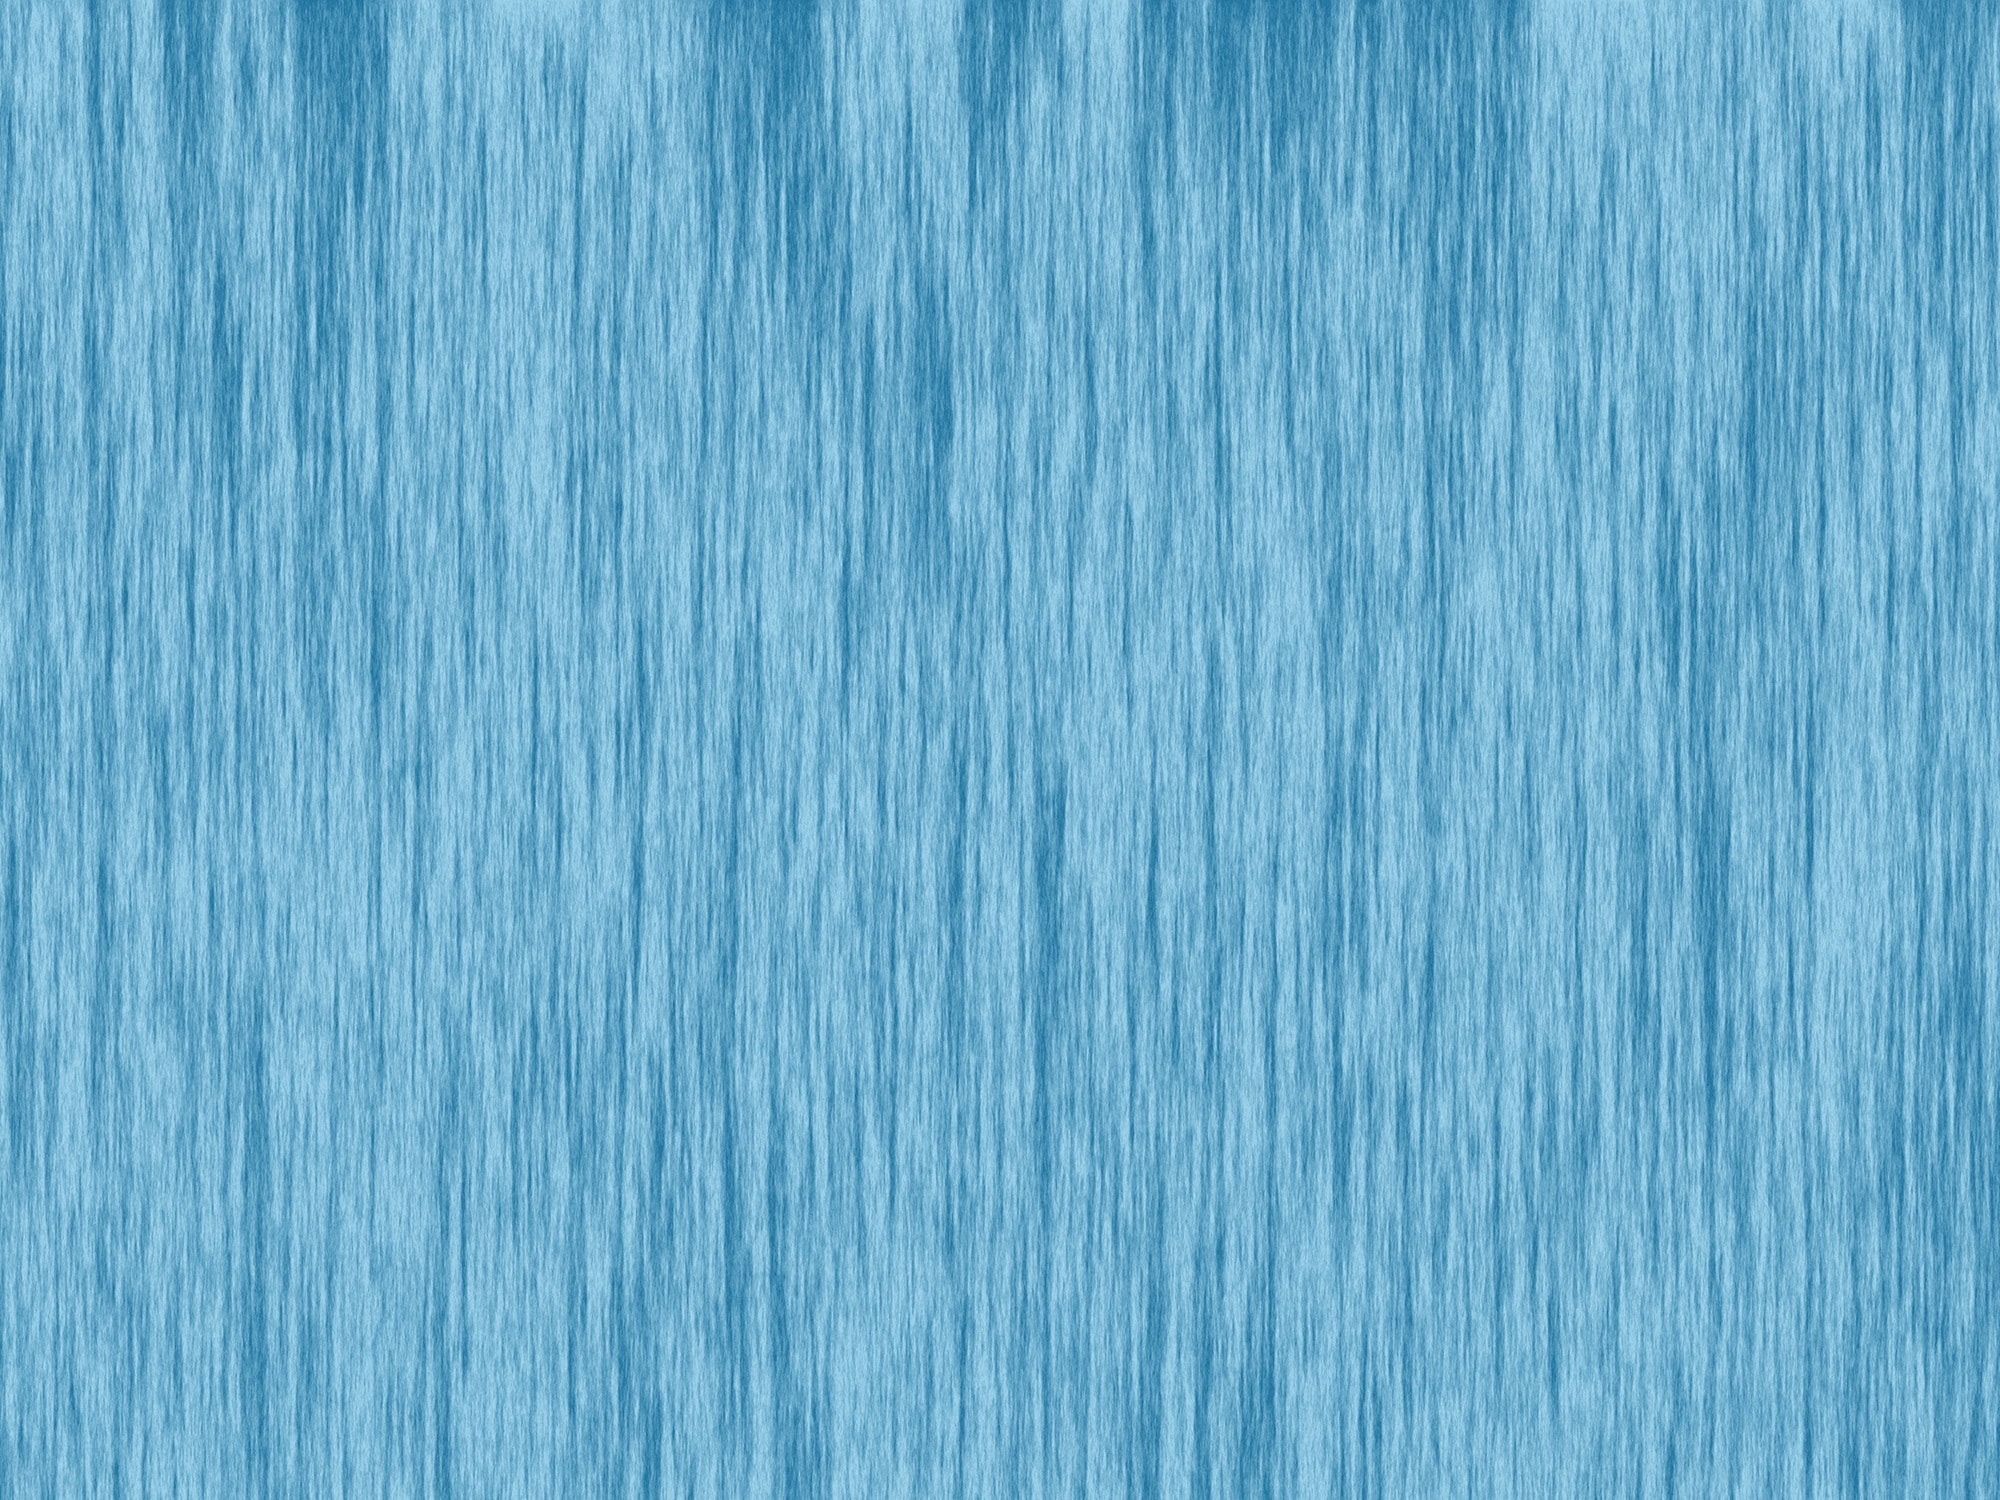 1000 Great Blue Background Photos 183 Pexels 183 Free Stock